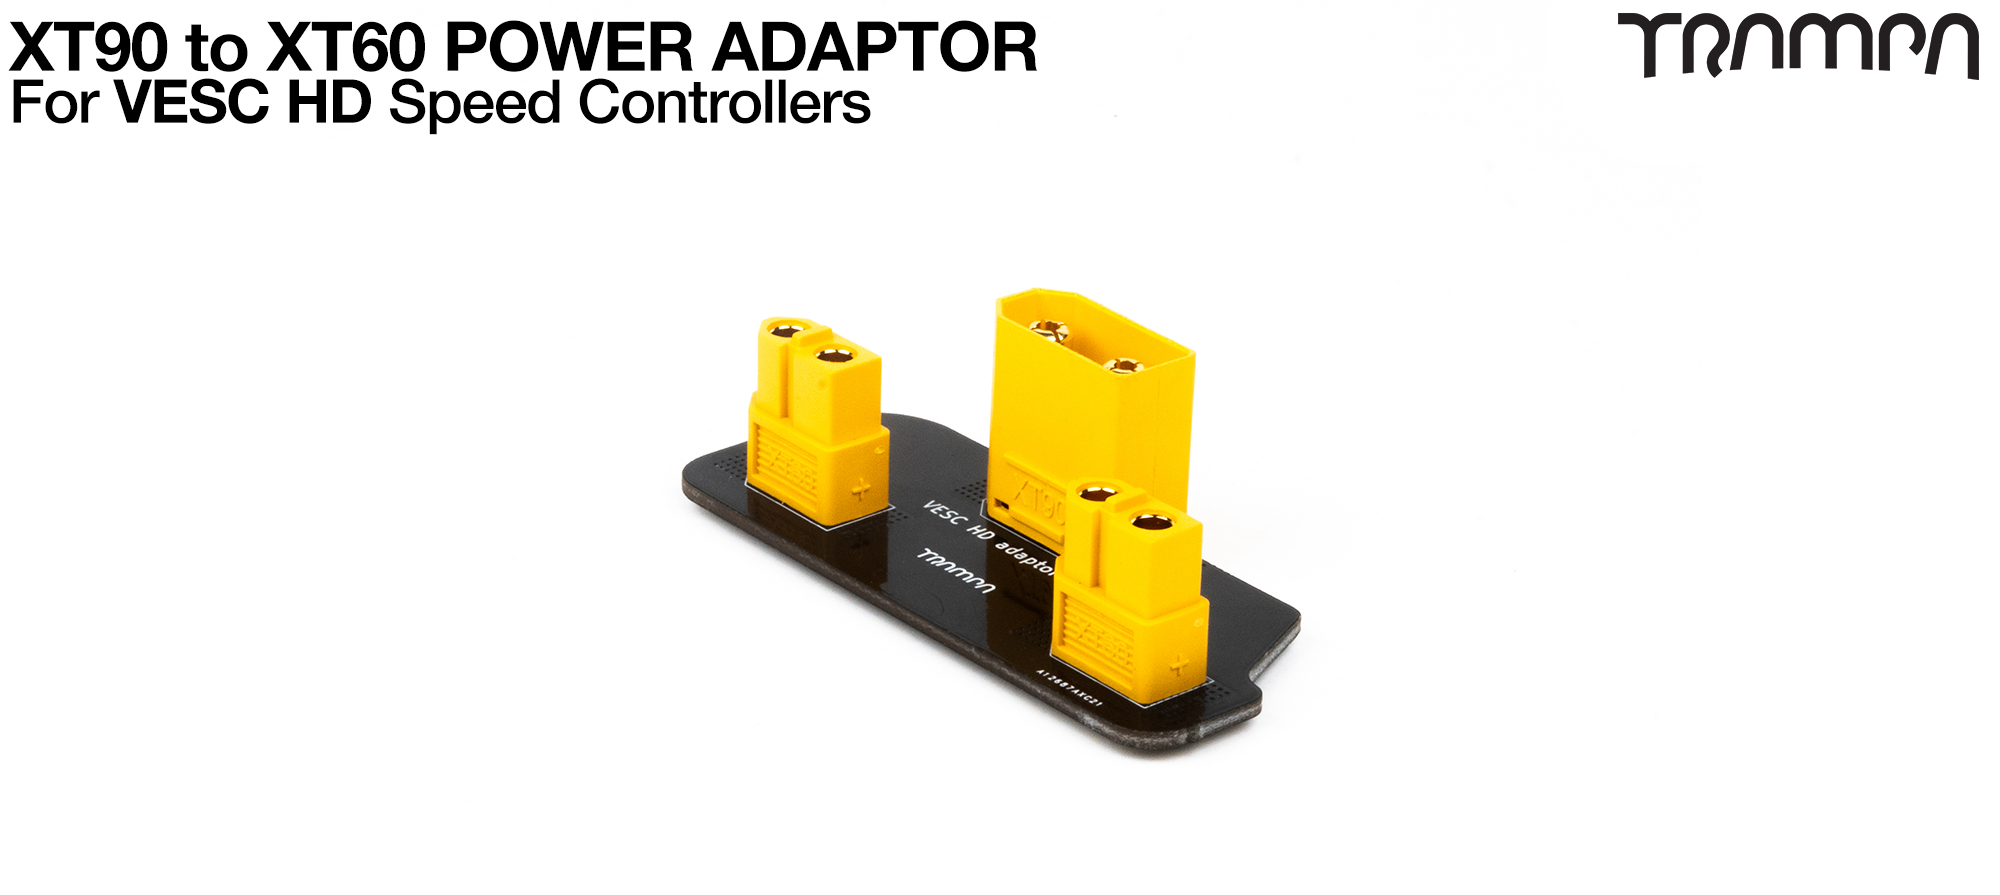 VESC HD XT90 to XT60 Power Adaptor